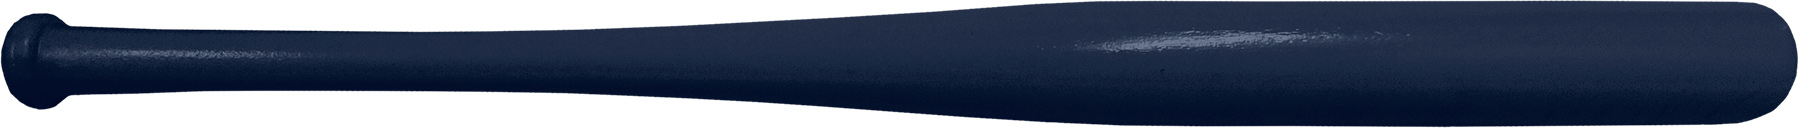 novelty navy baseball bat souvenir baseball bat